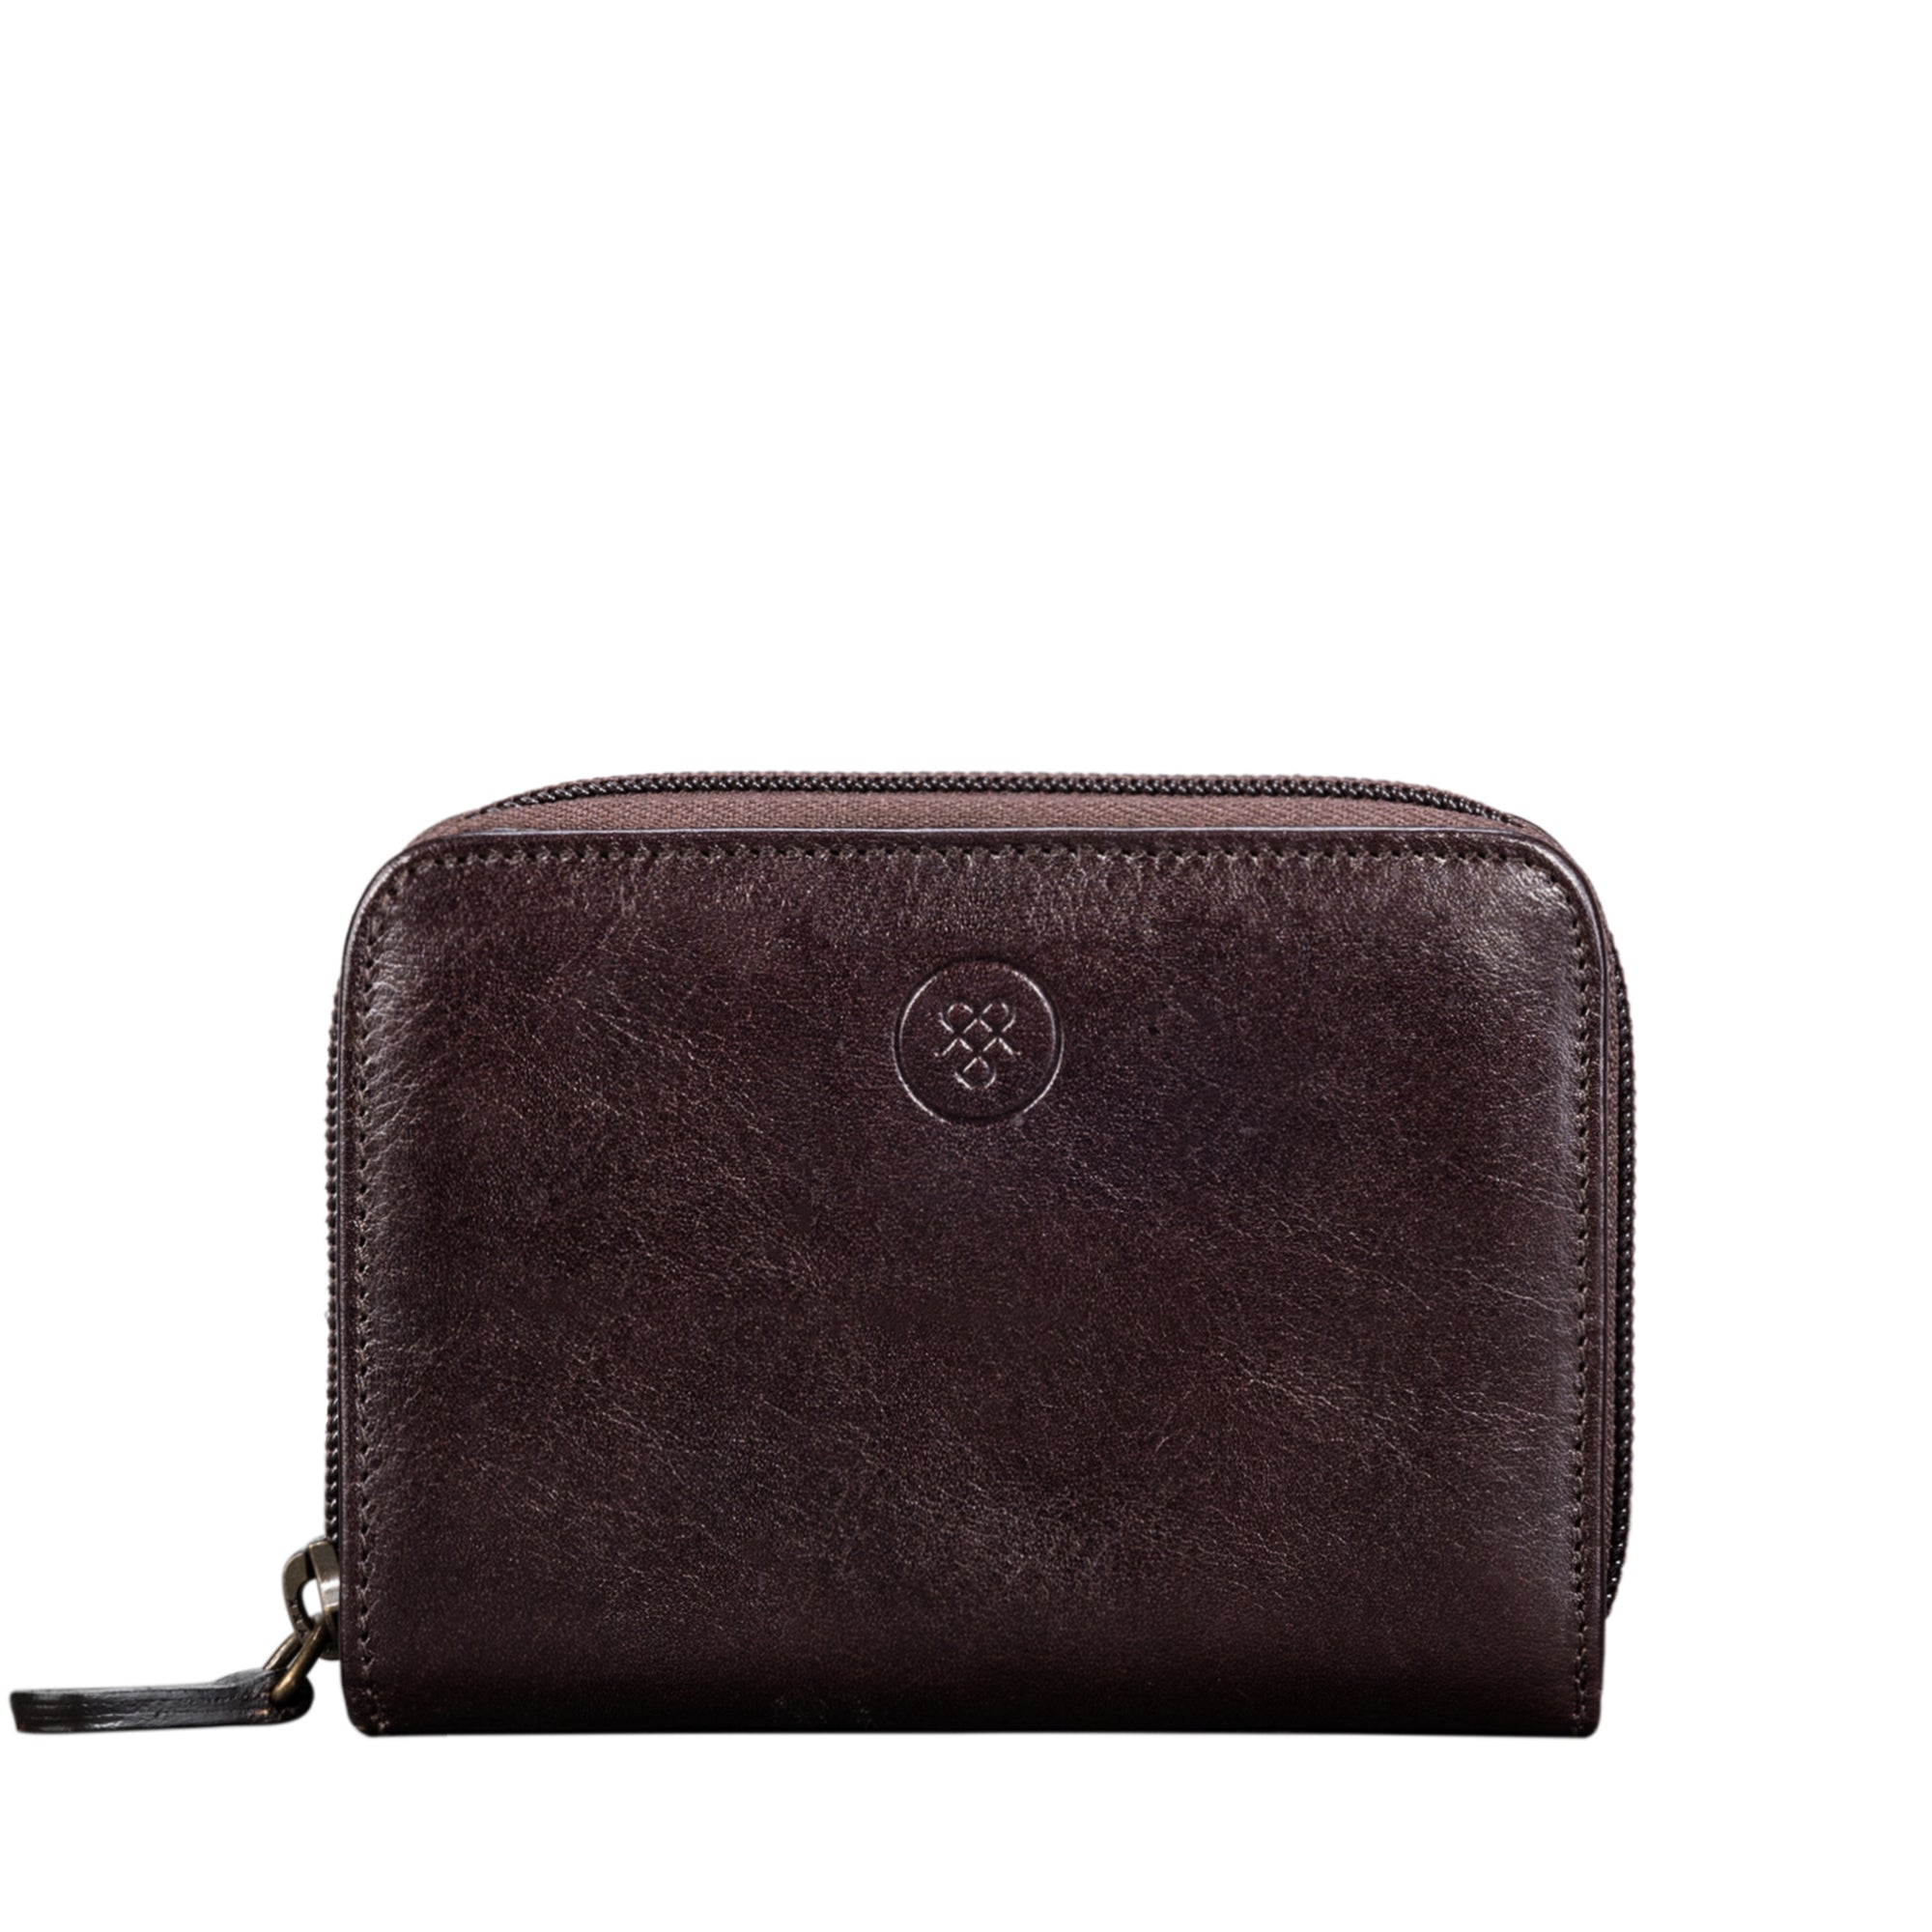 Image 1 of the 'Forino' Dark Chocolate Veg Tanned Leather Zip Purse